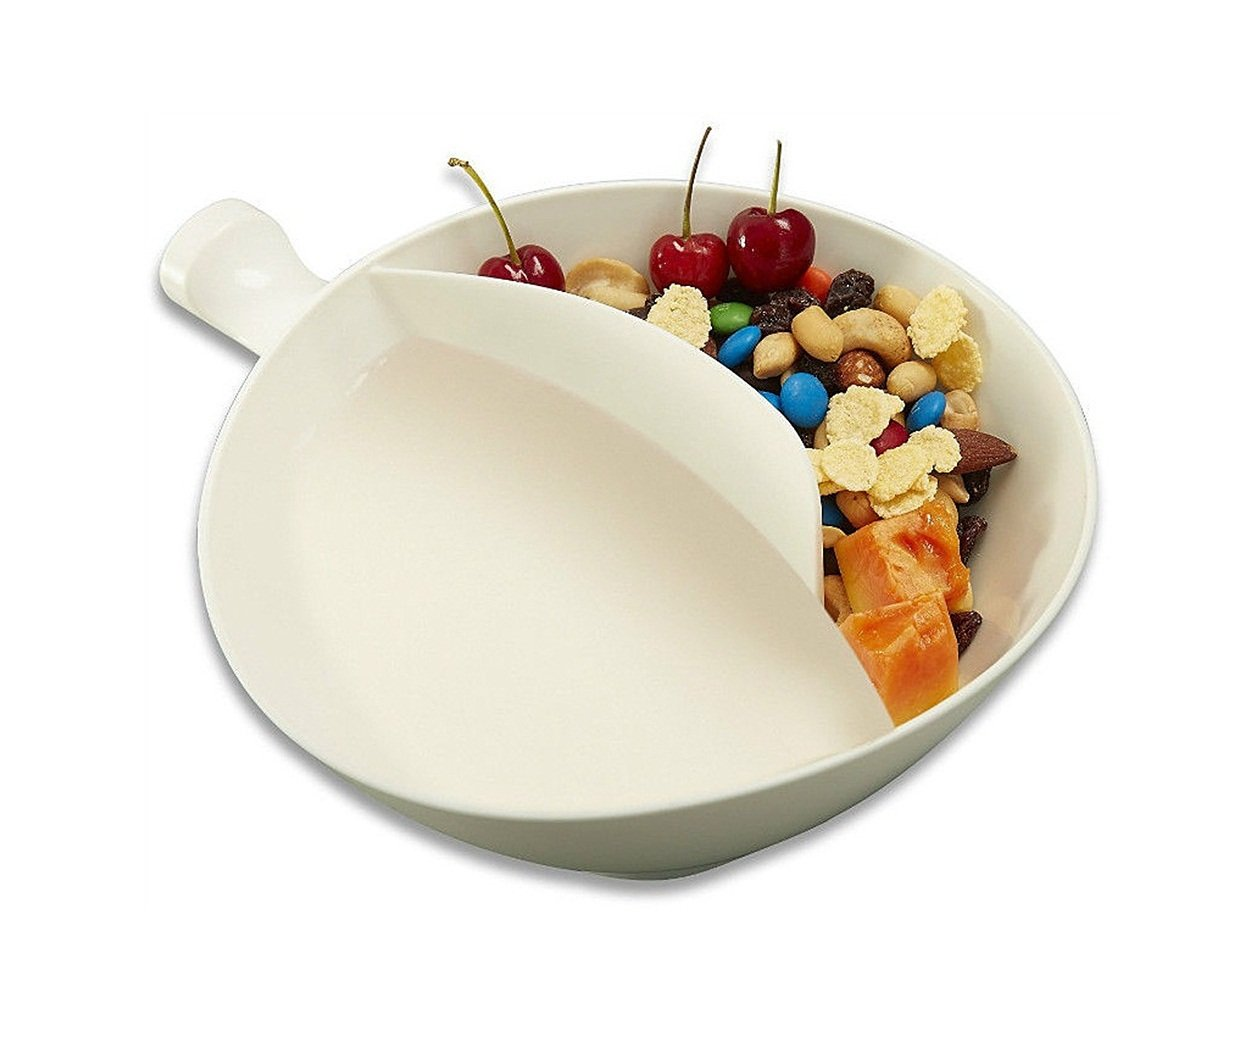 ABTP Anti-Soggy Cereal Bowl with Ergonomics Handle Design & Grip Soggy 2 Compartment White